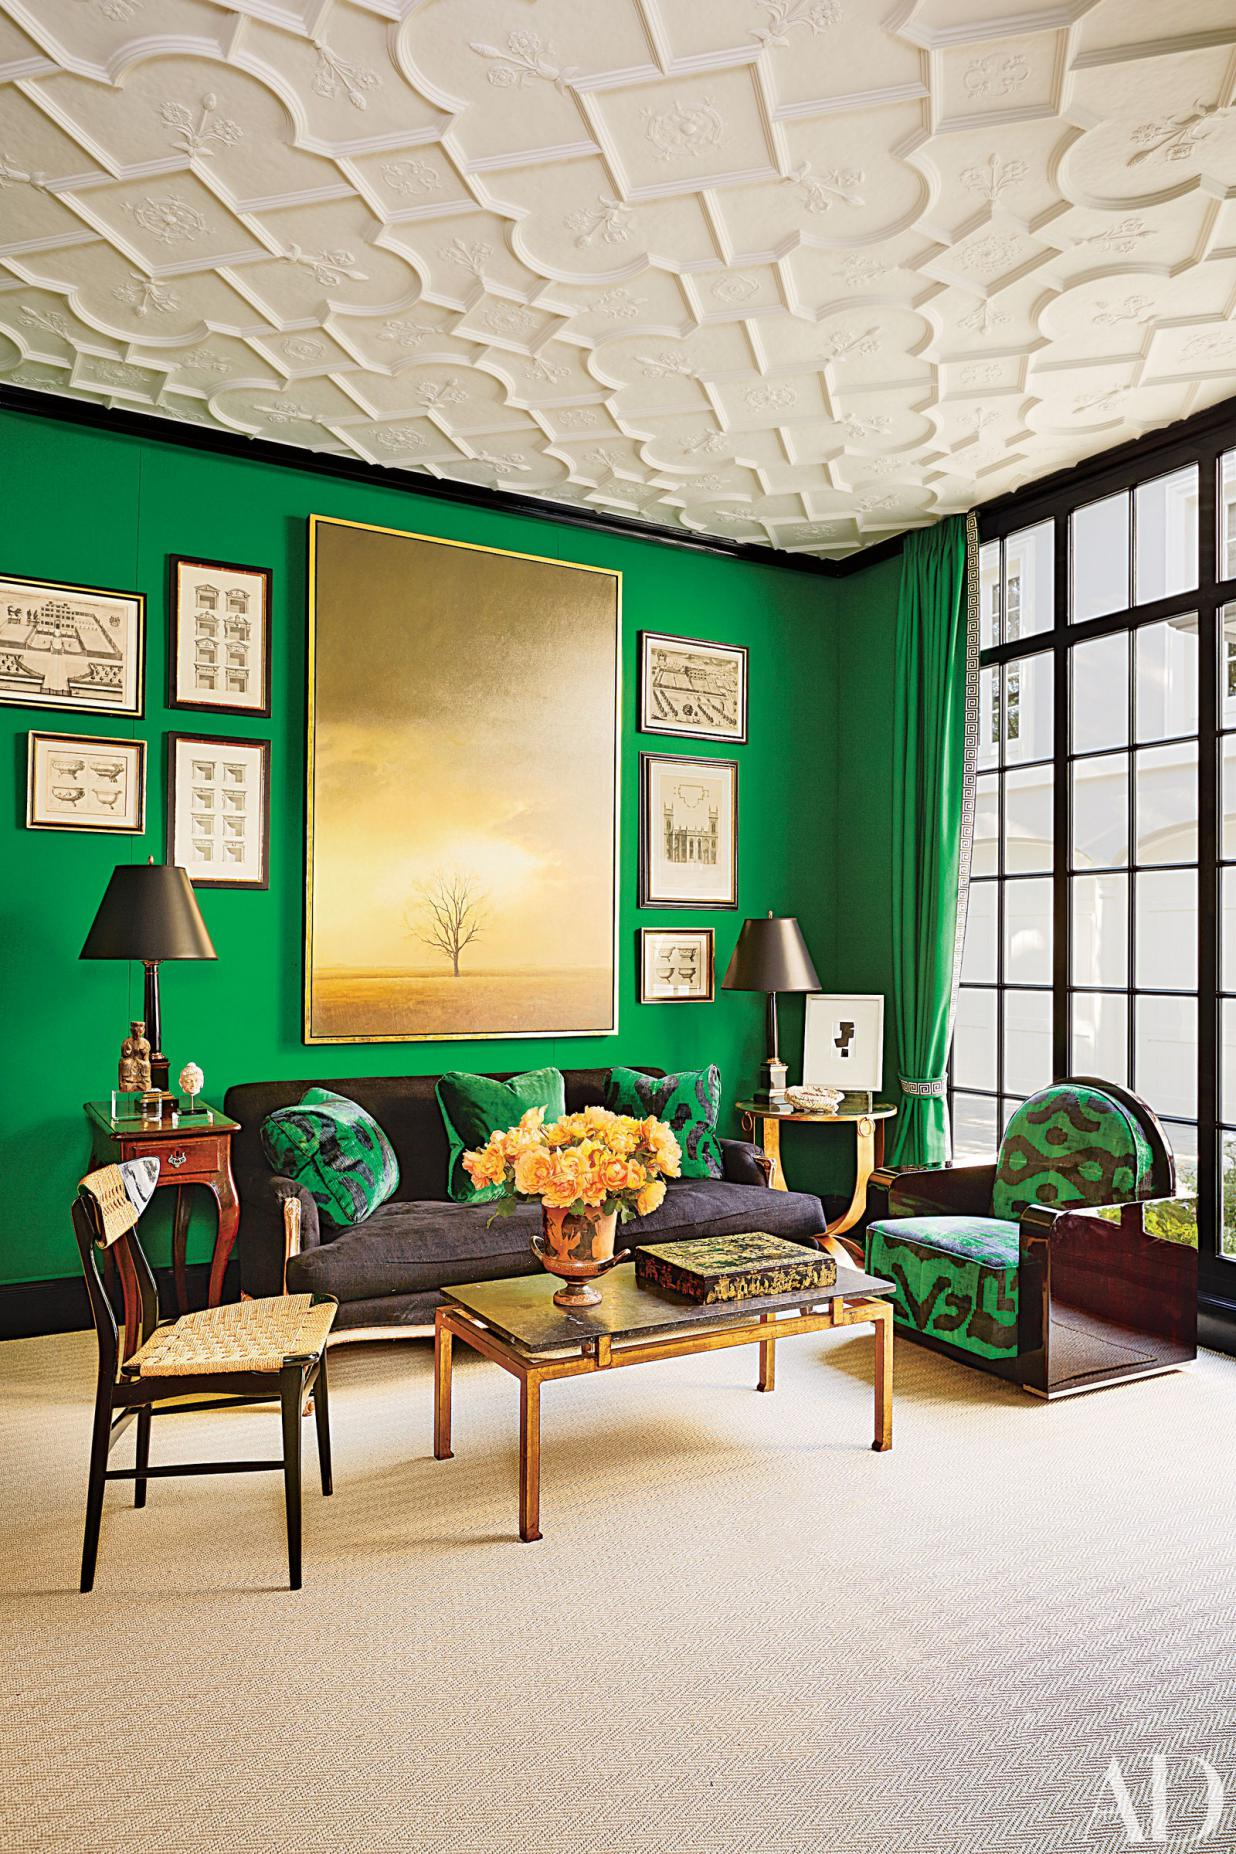 Living Room in White and Green Colours